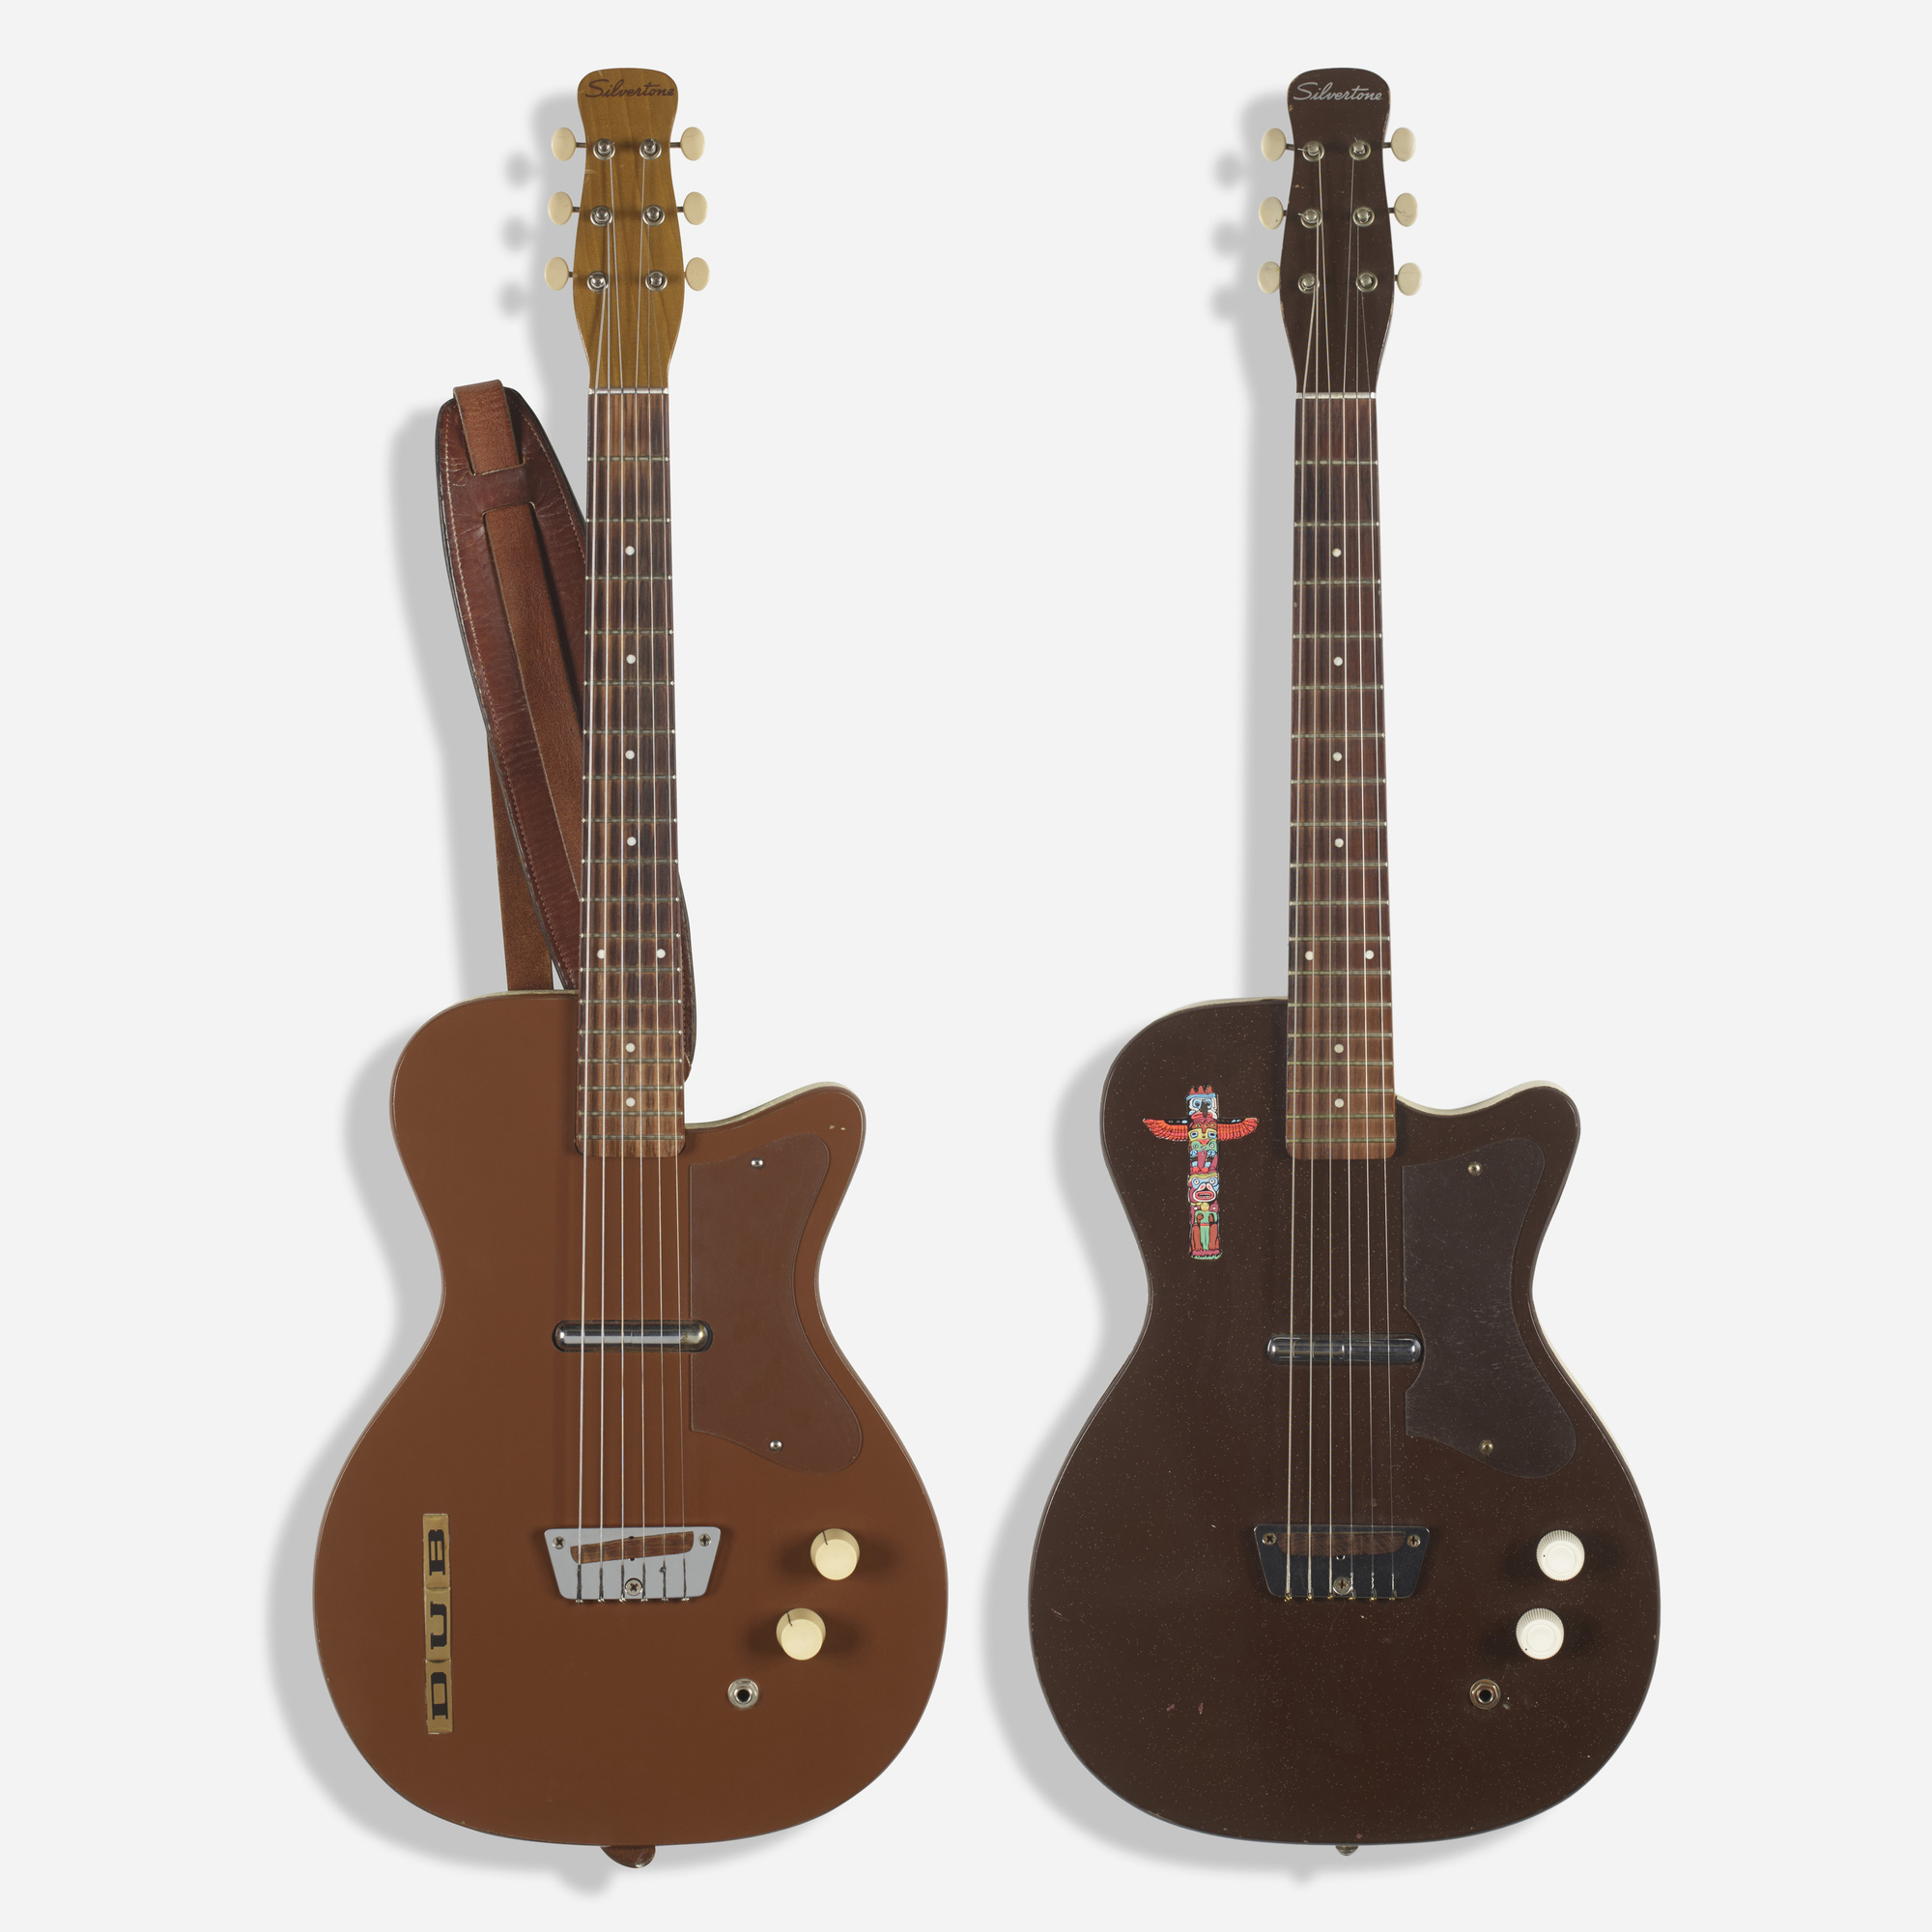 5b0951a0d6 364: SILVERTONE, U1 electric guitars, set of two < Rock Style from ...